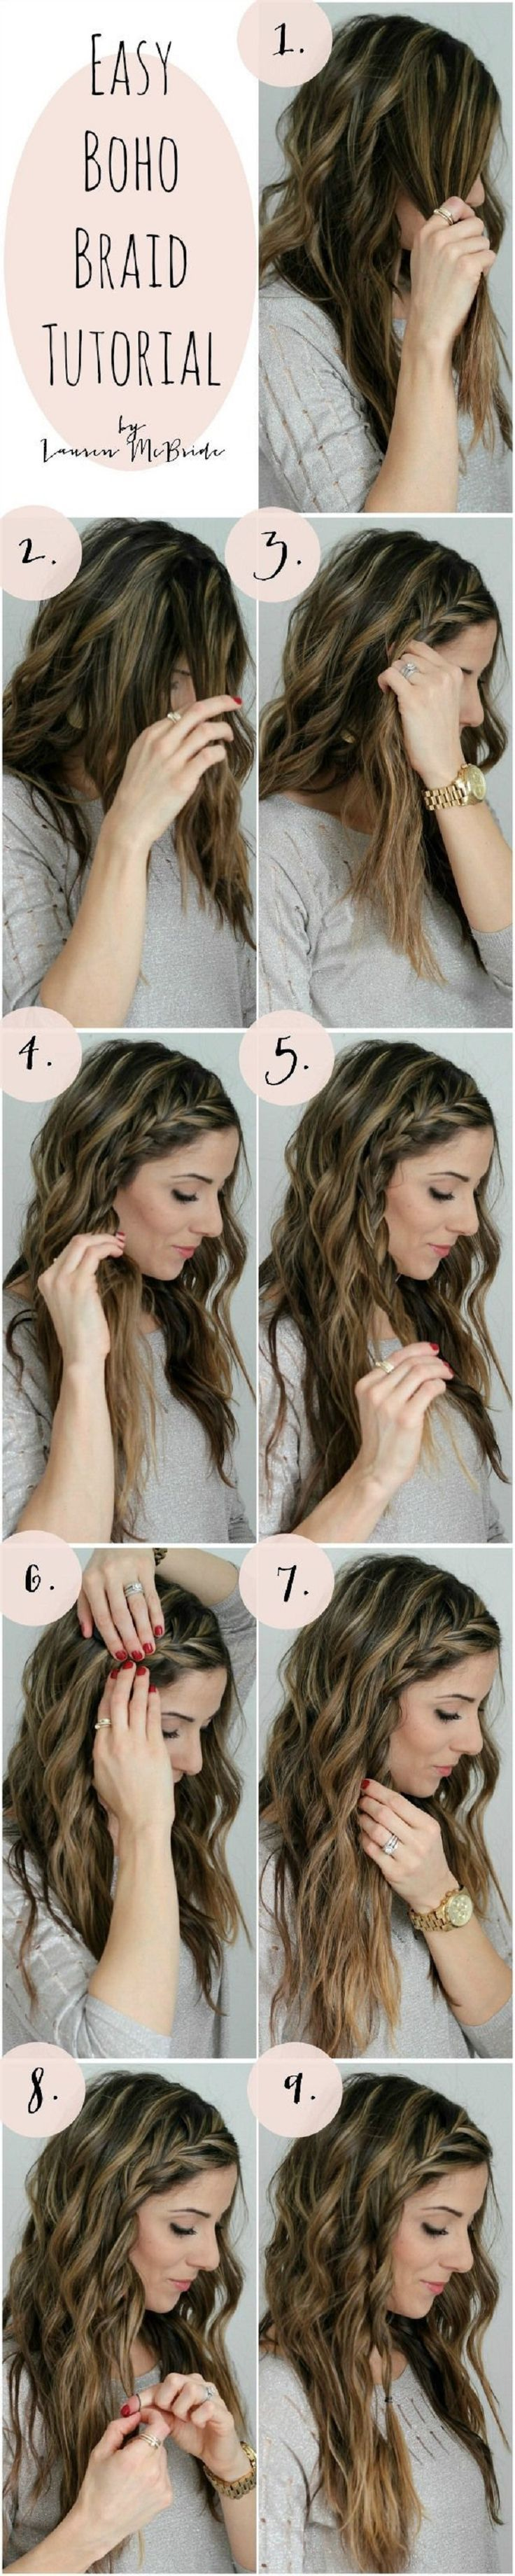 279 best Hair styles images on Pinterest